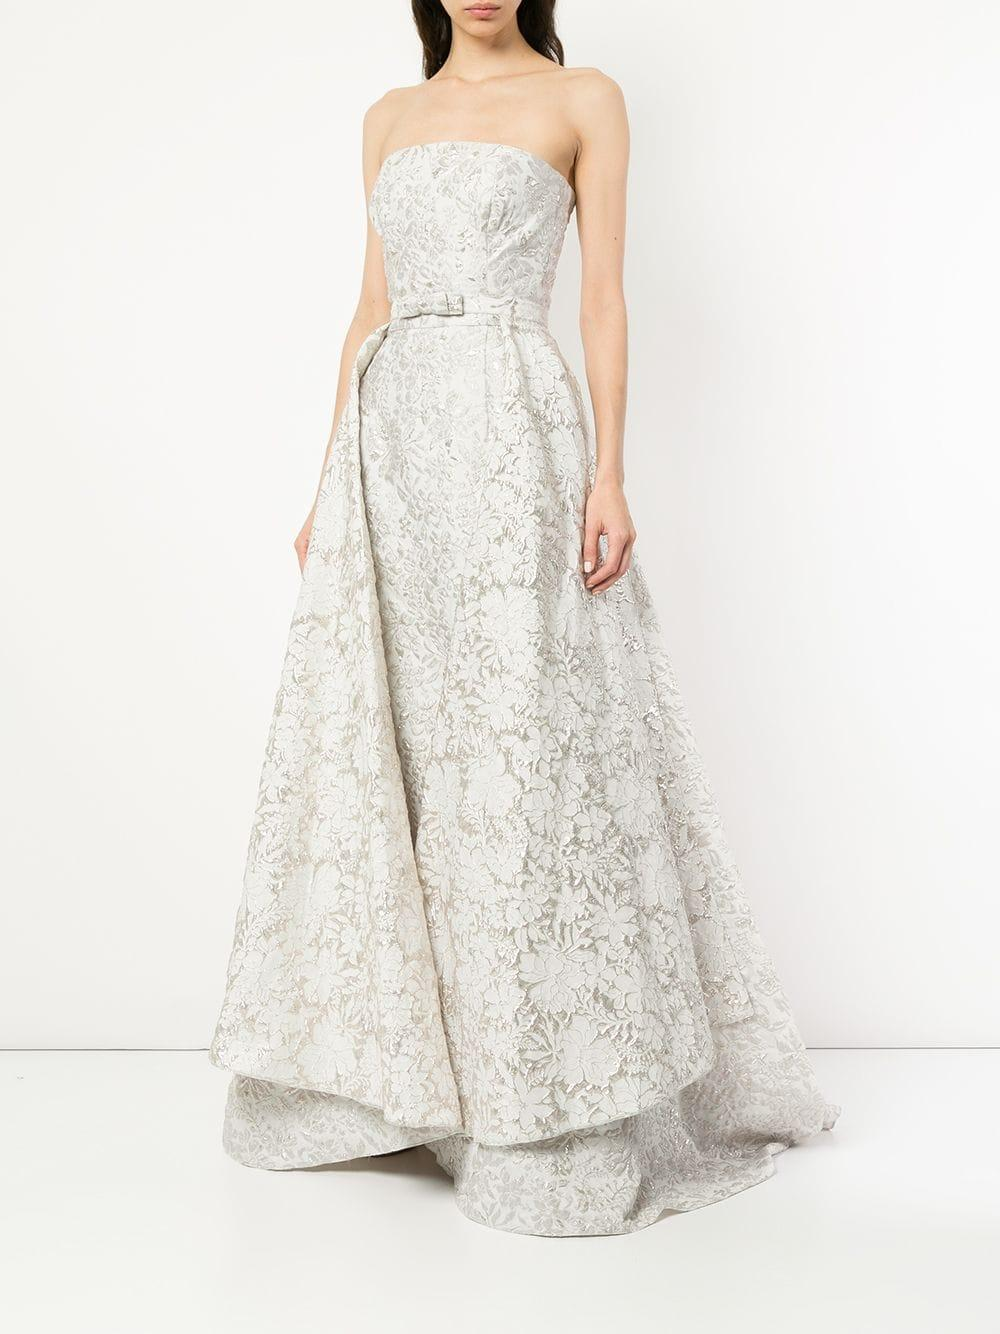 brocade wedding dress